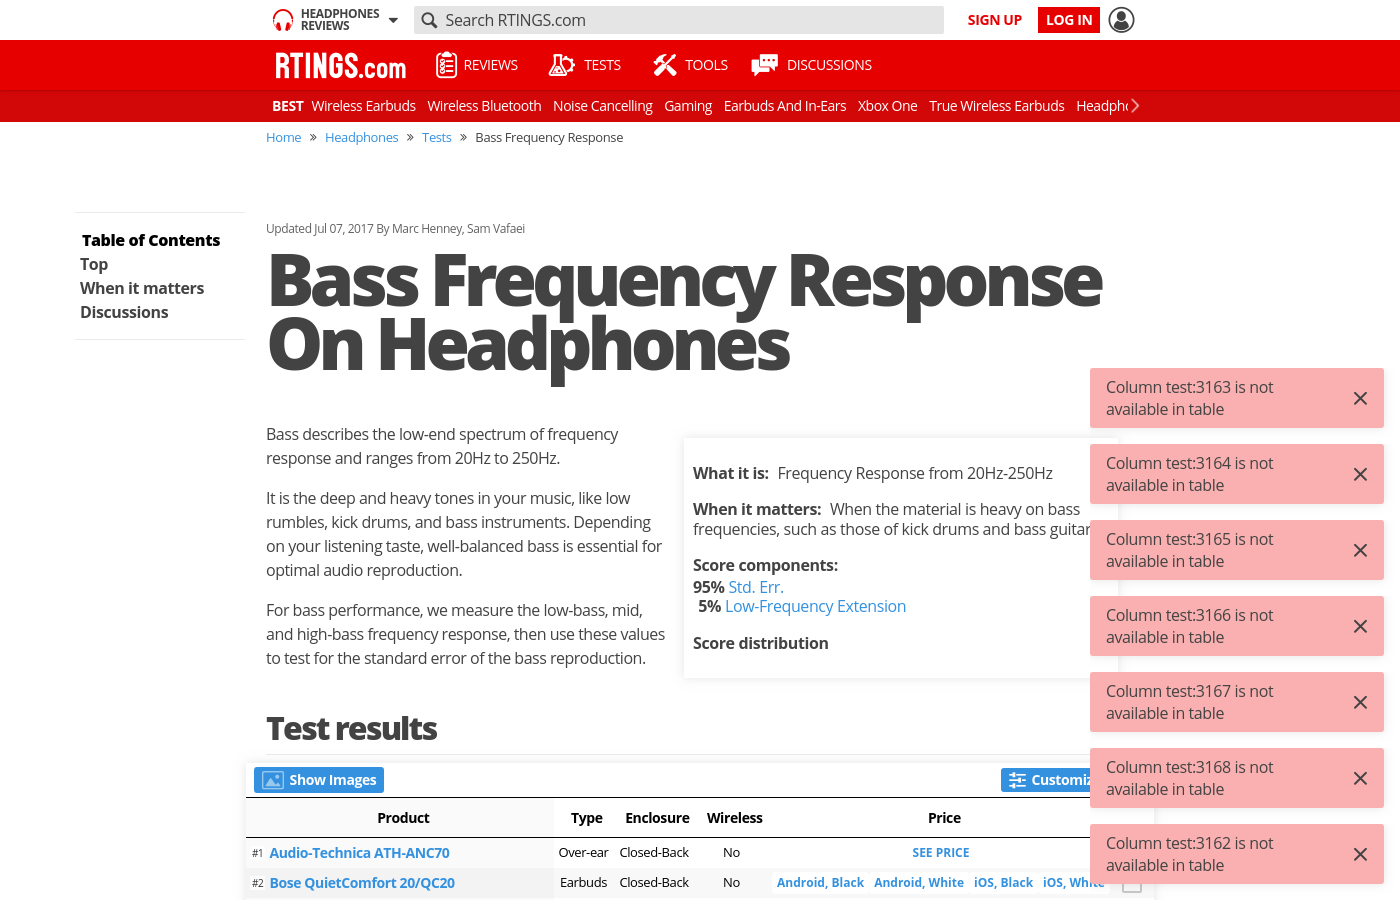 Bass Frequency Response On Headphones - RTINGS com